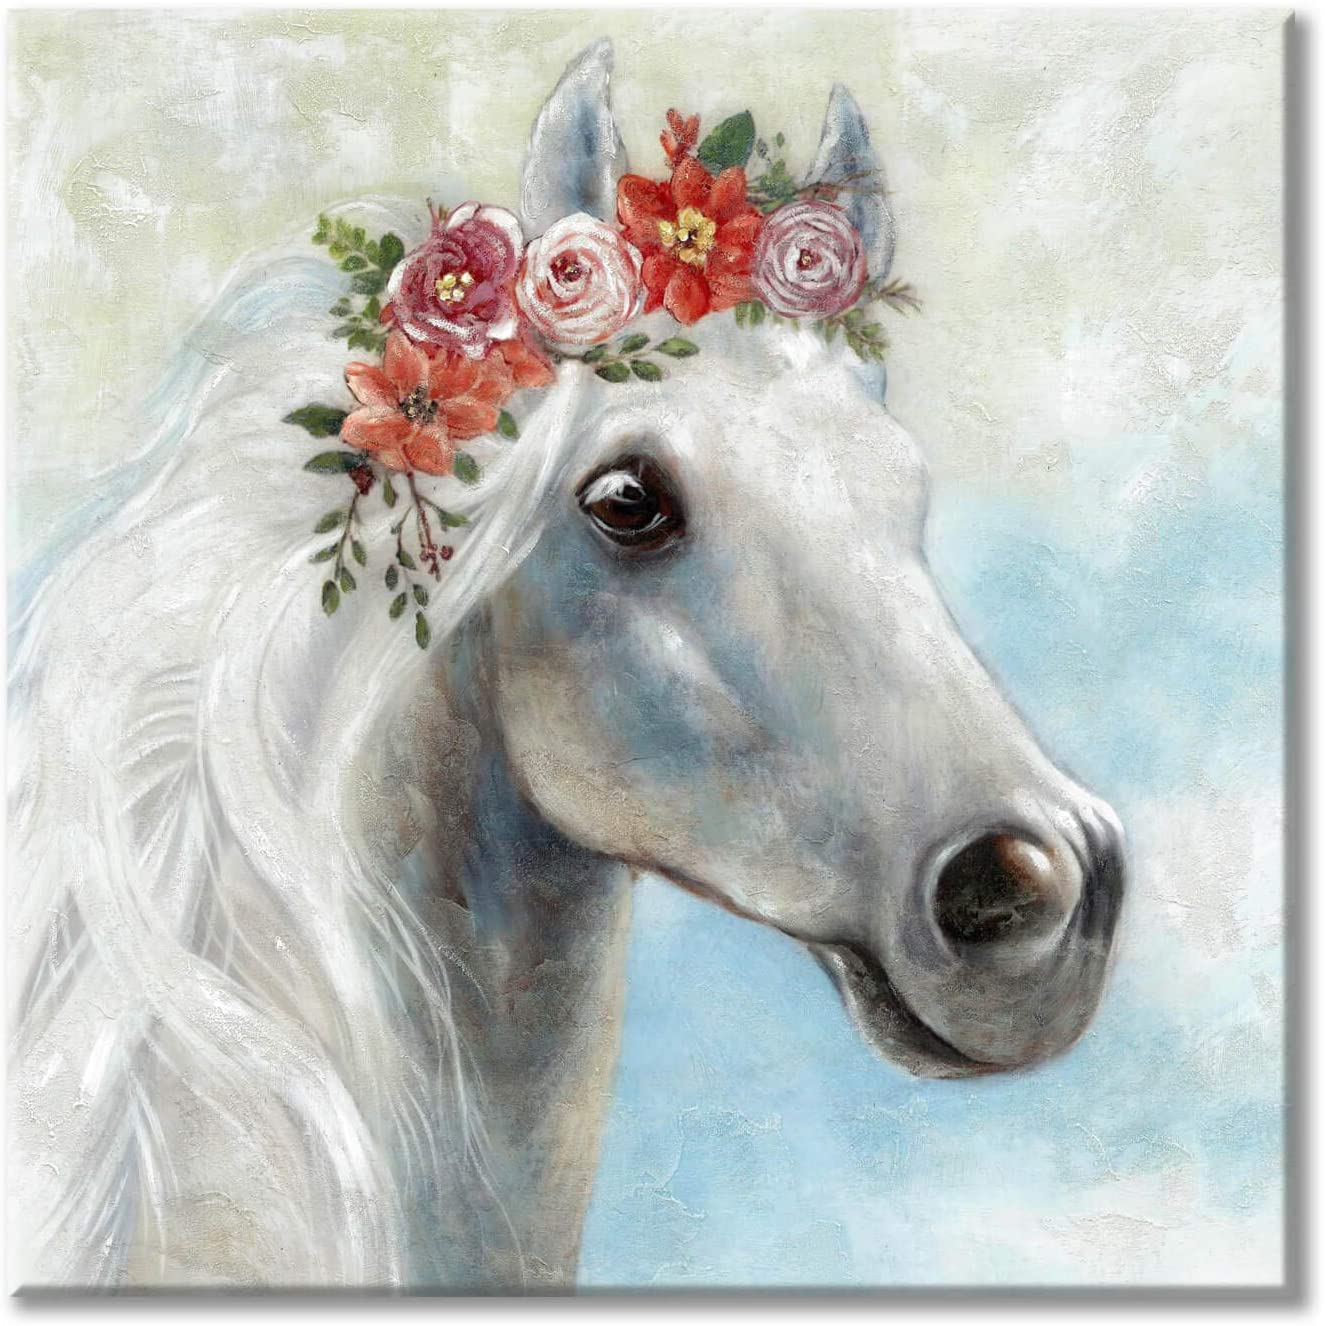 White Horse Canvas Wall Art: Animal with Flower Canvas Painting Artwork for Dining Room (36'' x 36'' x 1 Panel)